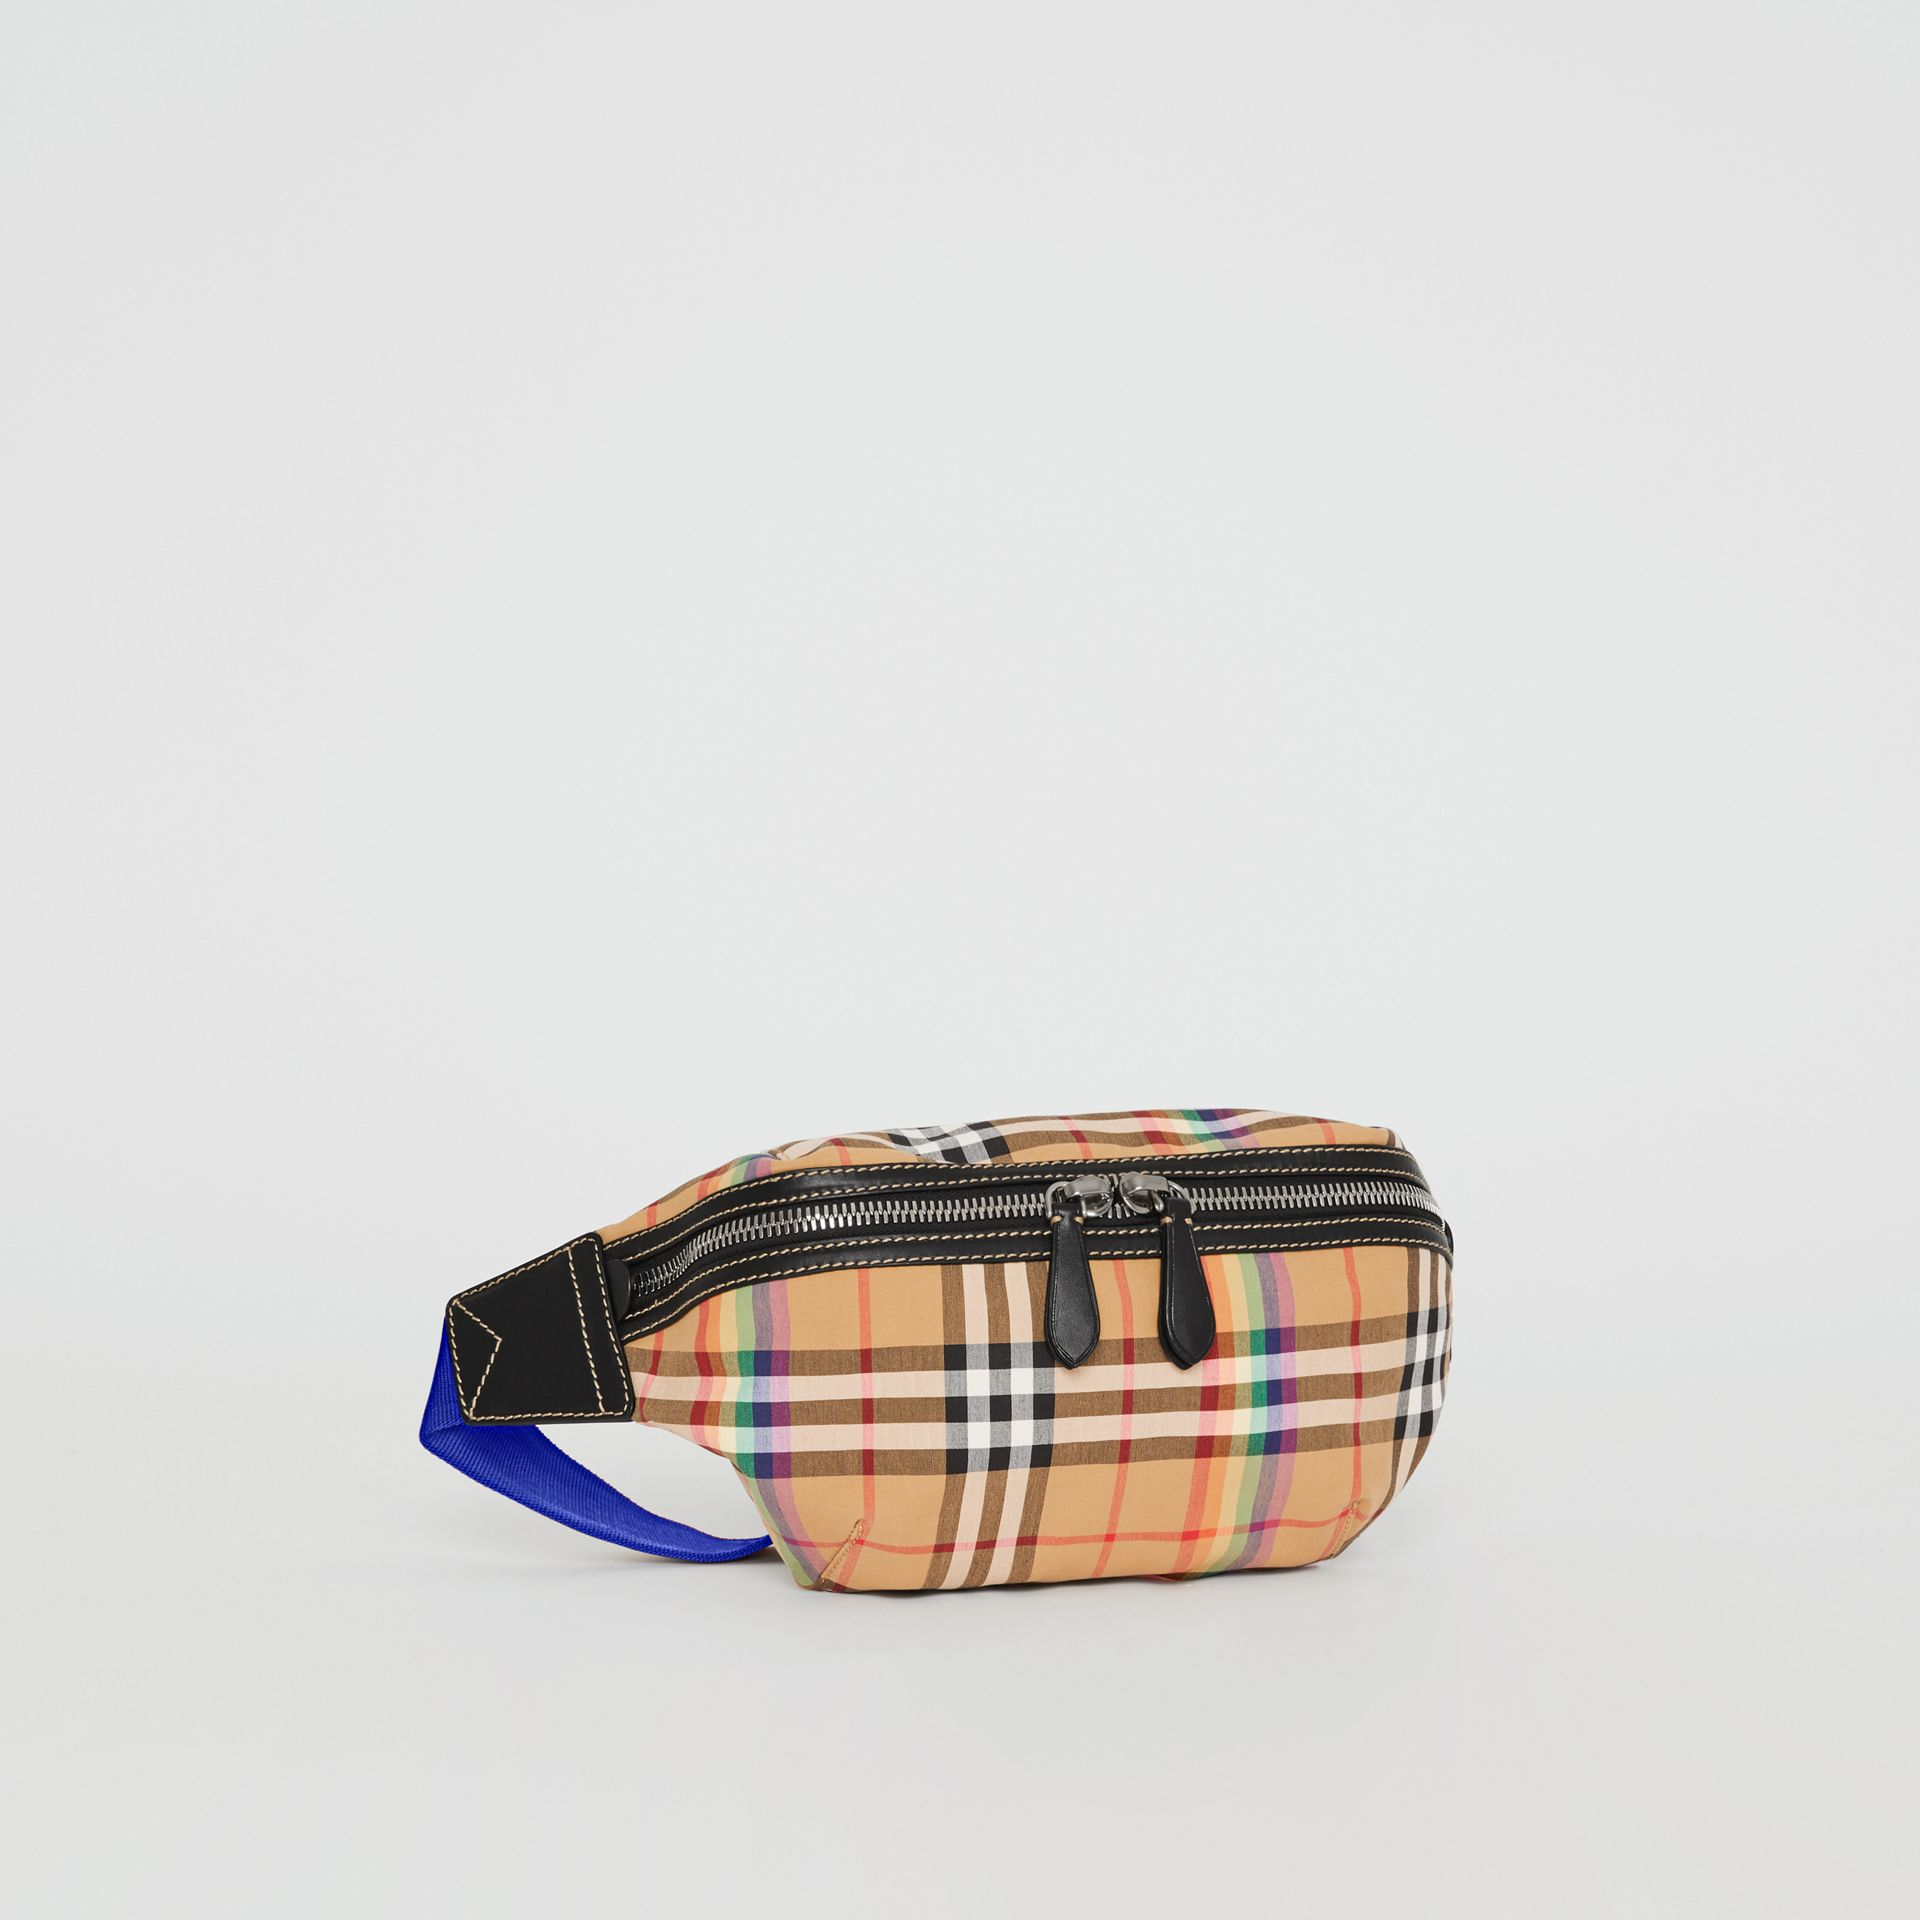 Medium Rainbow Vintage Check Bum Bag in Antique Yellow | Burberry - gallery image 7